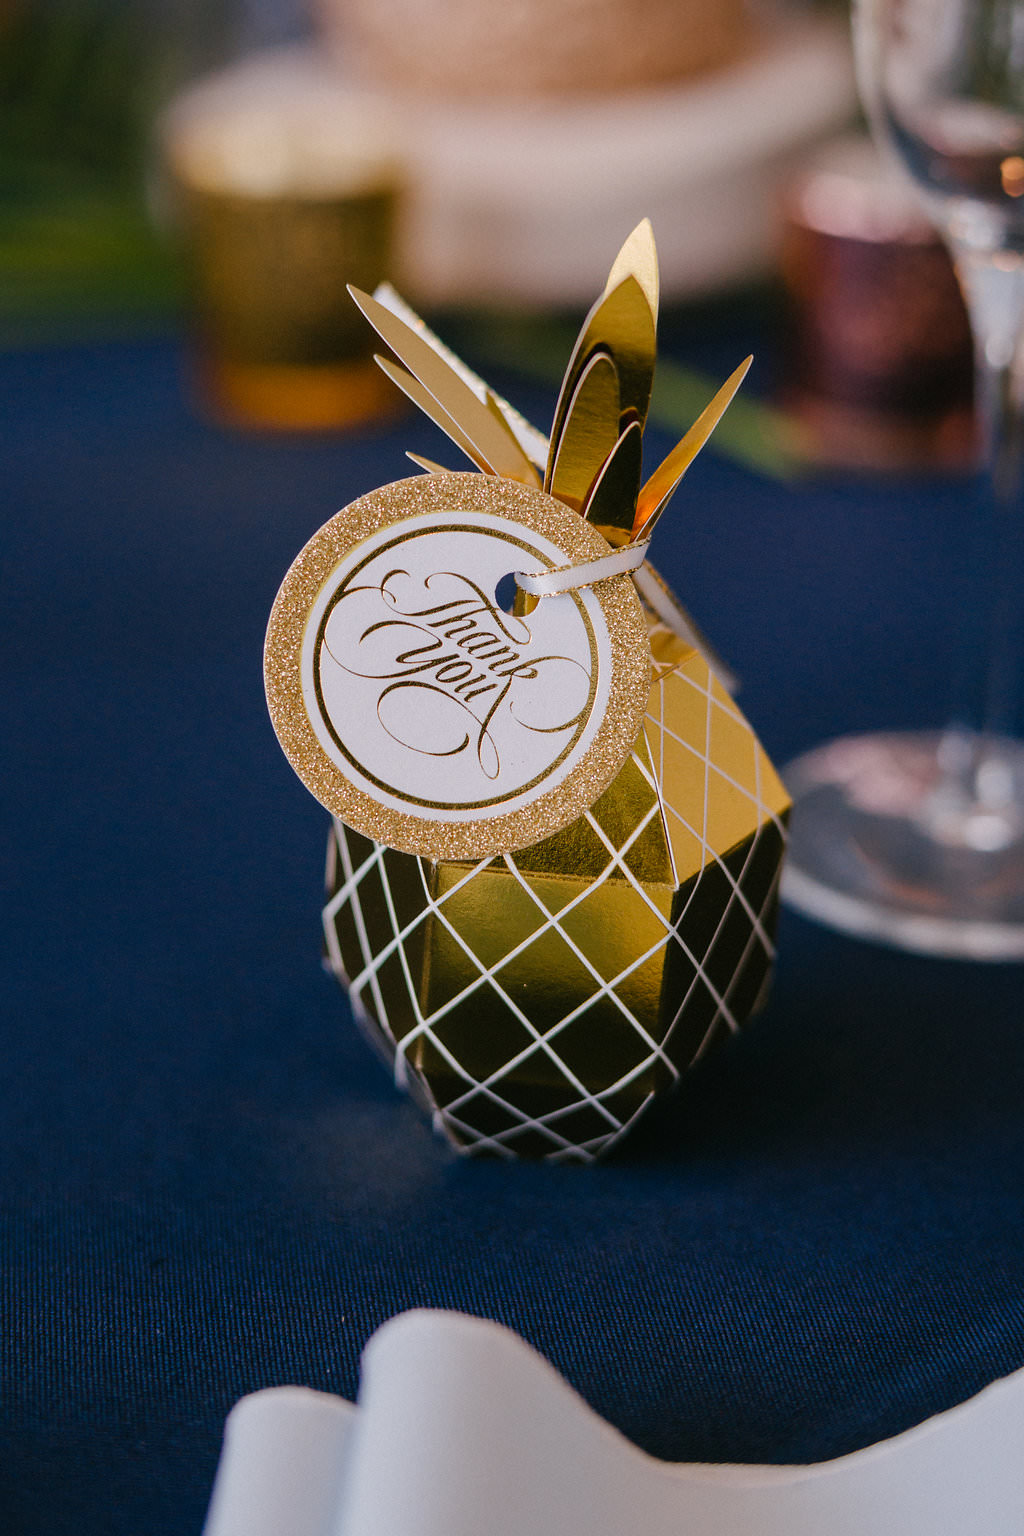 Tropical Inspired Hotel Wedding Reception Decor, Gold Paper Pineapple Wedding Favor on Navy Blue Linen | Tampa Bay Photographer Grind and Press | Special Moments Event Planning